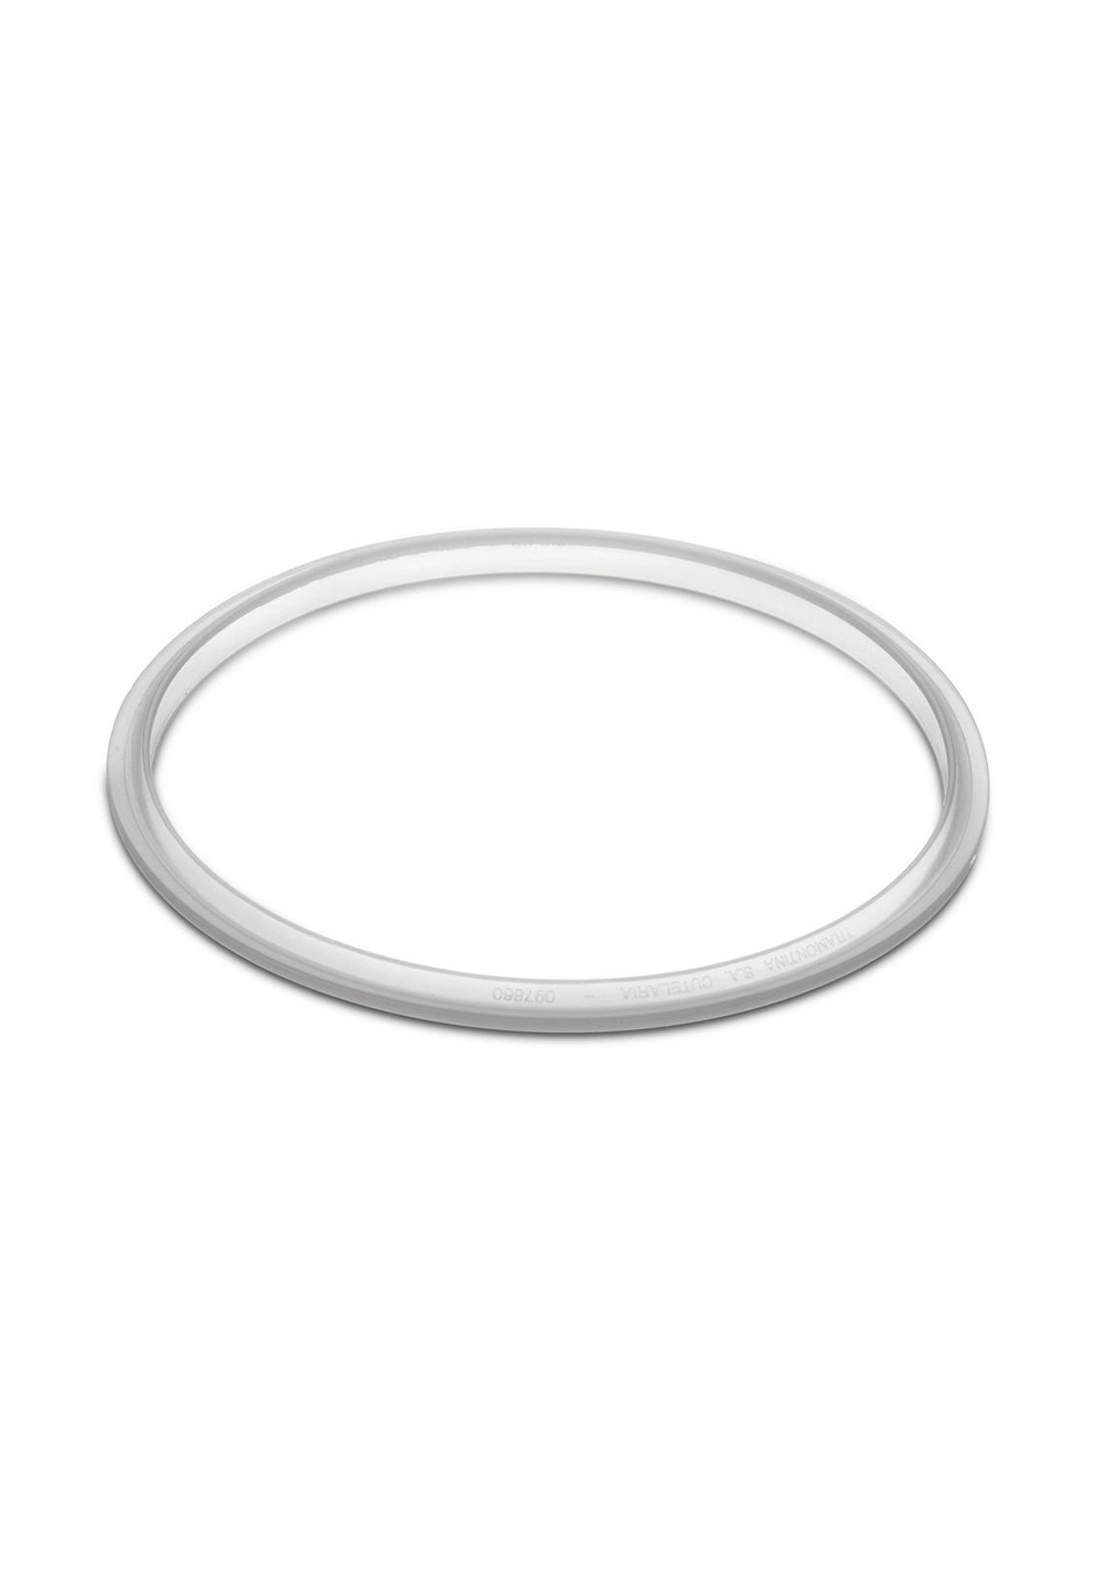 Tramontina 20579-001 Silicone Ring For Pressure Cooker 20 cm  White واشر لقدر الضغط